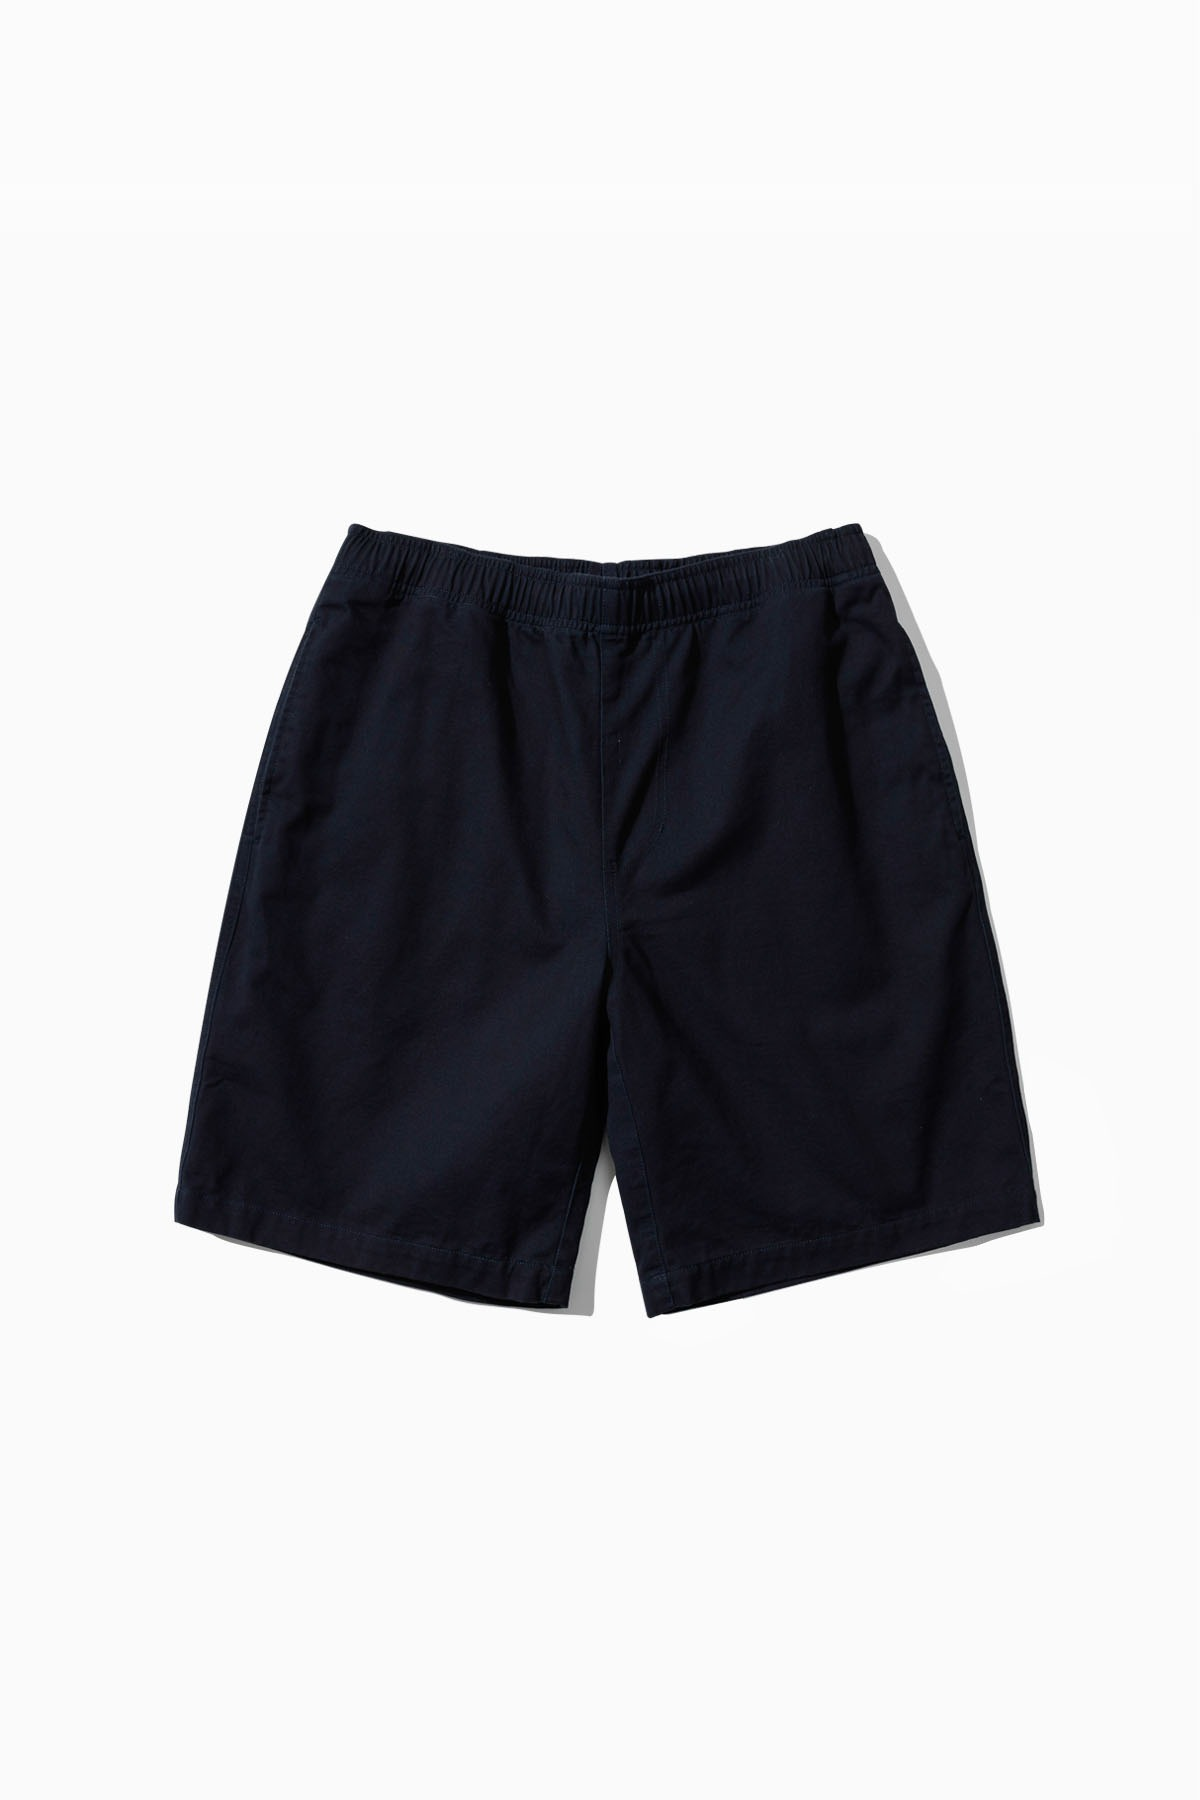 WIDE SHORTS_NAVY